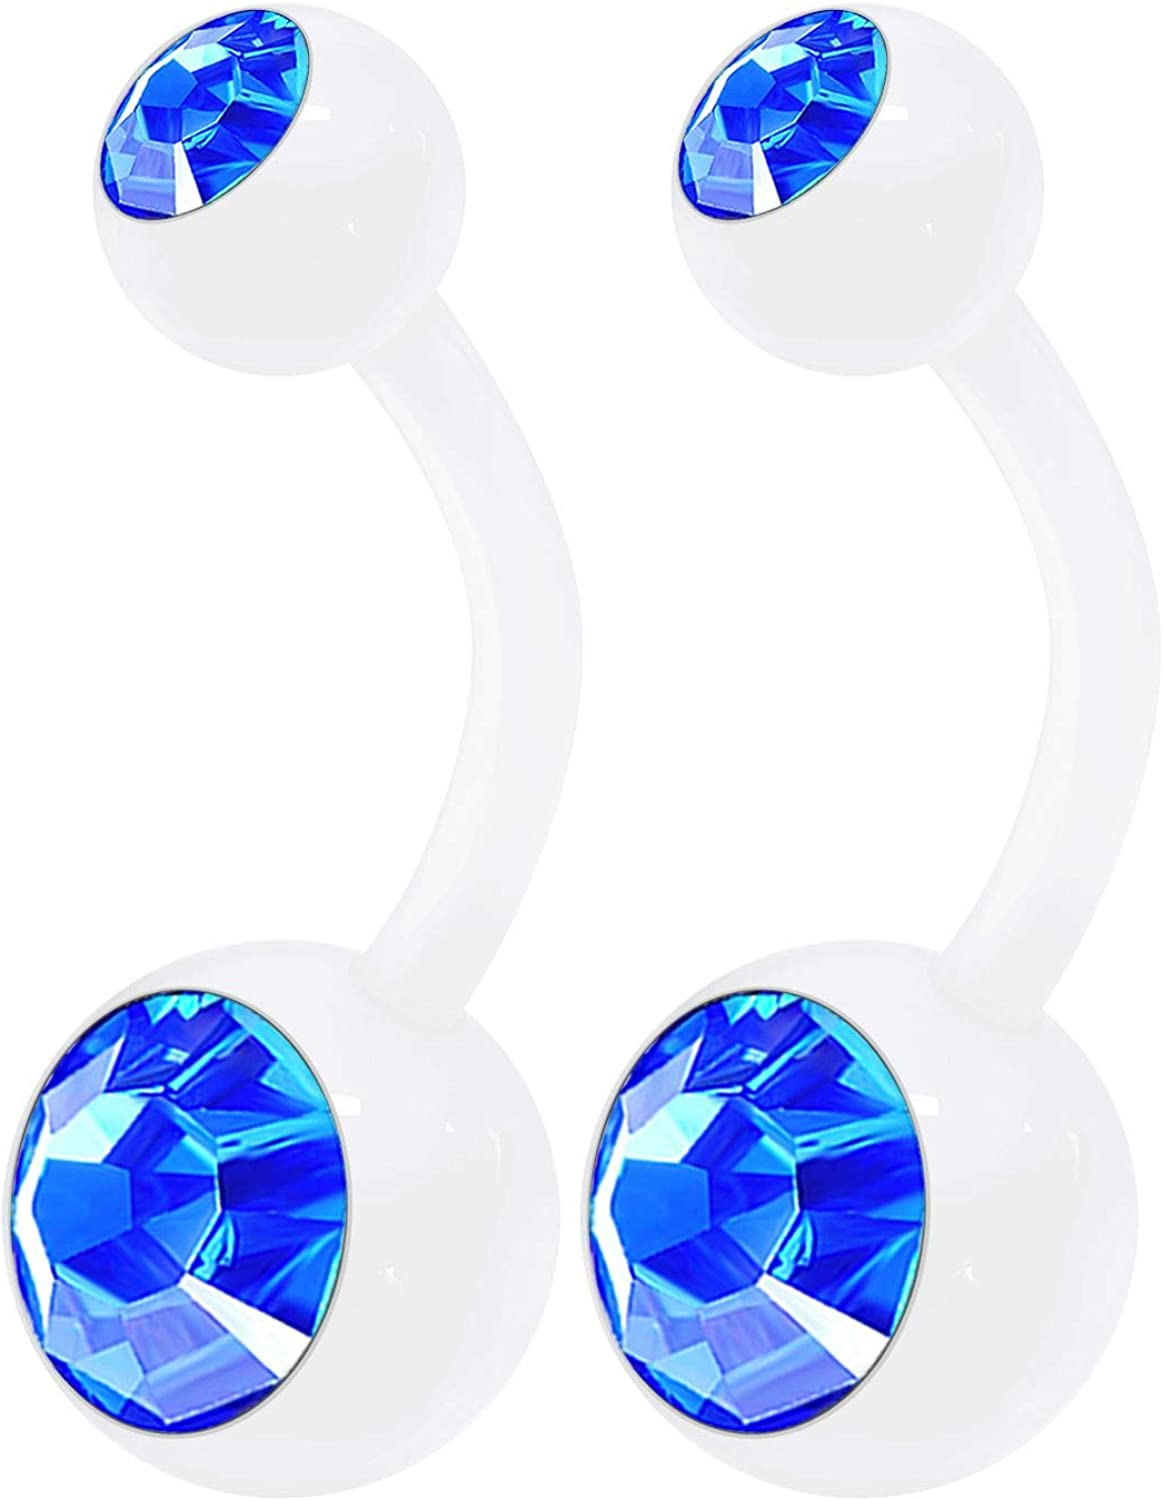 2PCS Clear Acrylic Cute Belly Navel Bar Ring Stud 14 Gauge 3/8 10mm Crystal Ball Earrings Piercing Jewelry Choose Colors